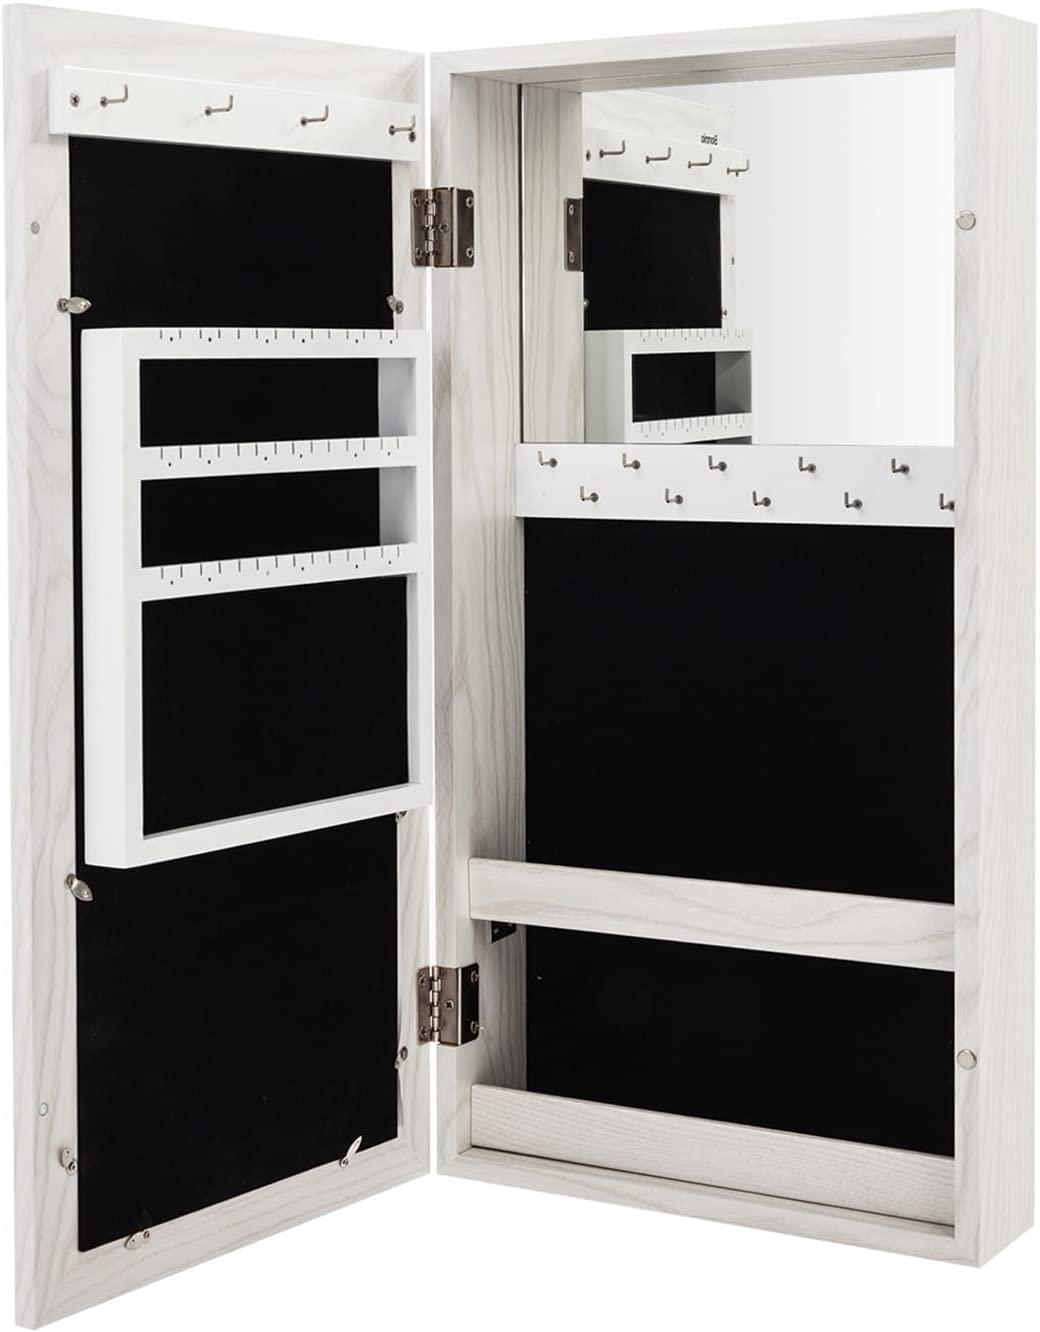 Simple PVC Wood Grain Coating Jewelry Storage Damp-Proof Ranking TOP18 Safety and trust M Photo